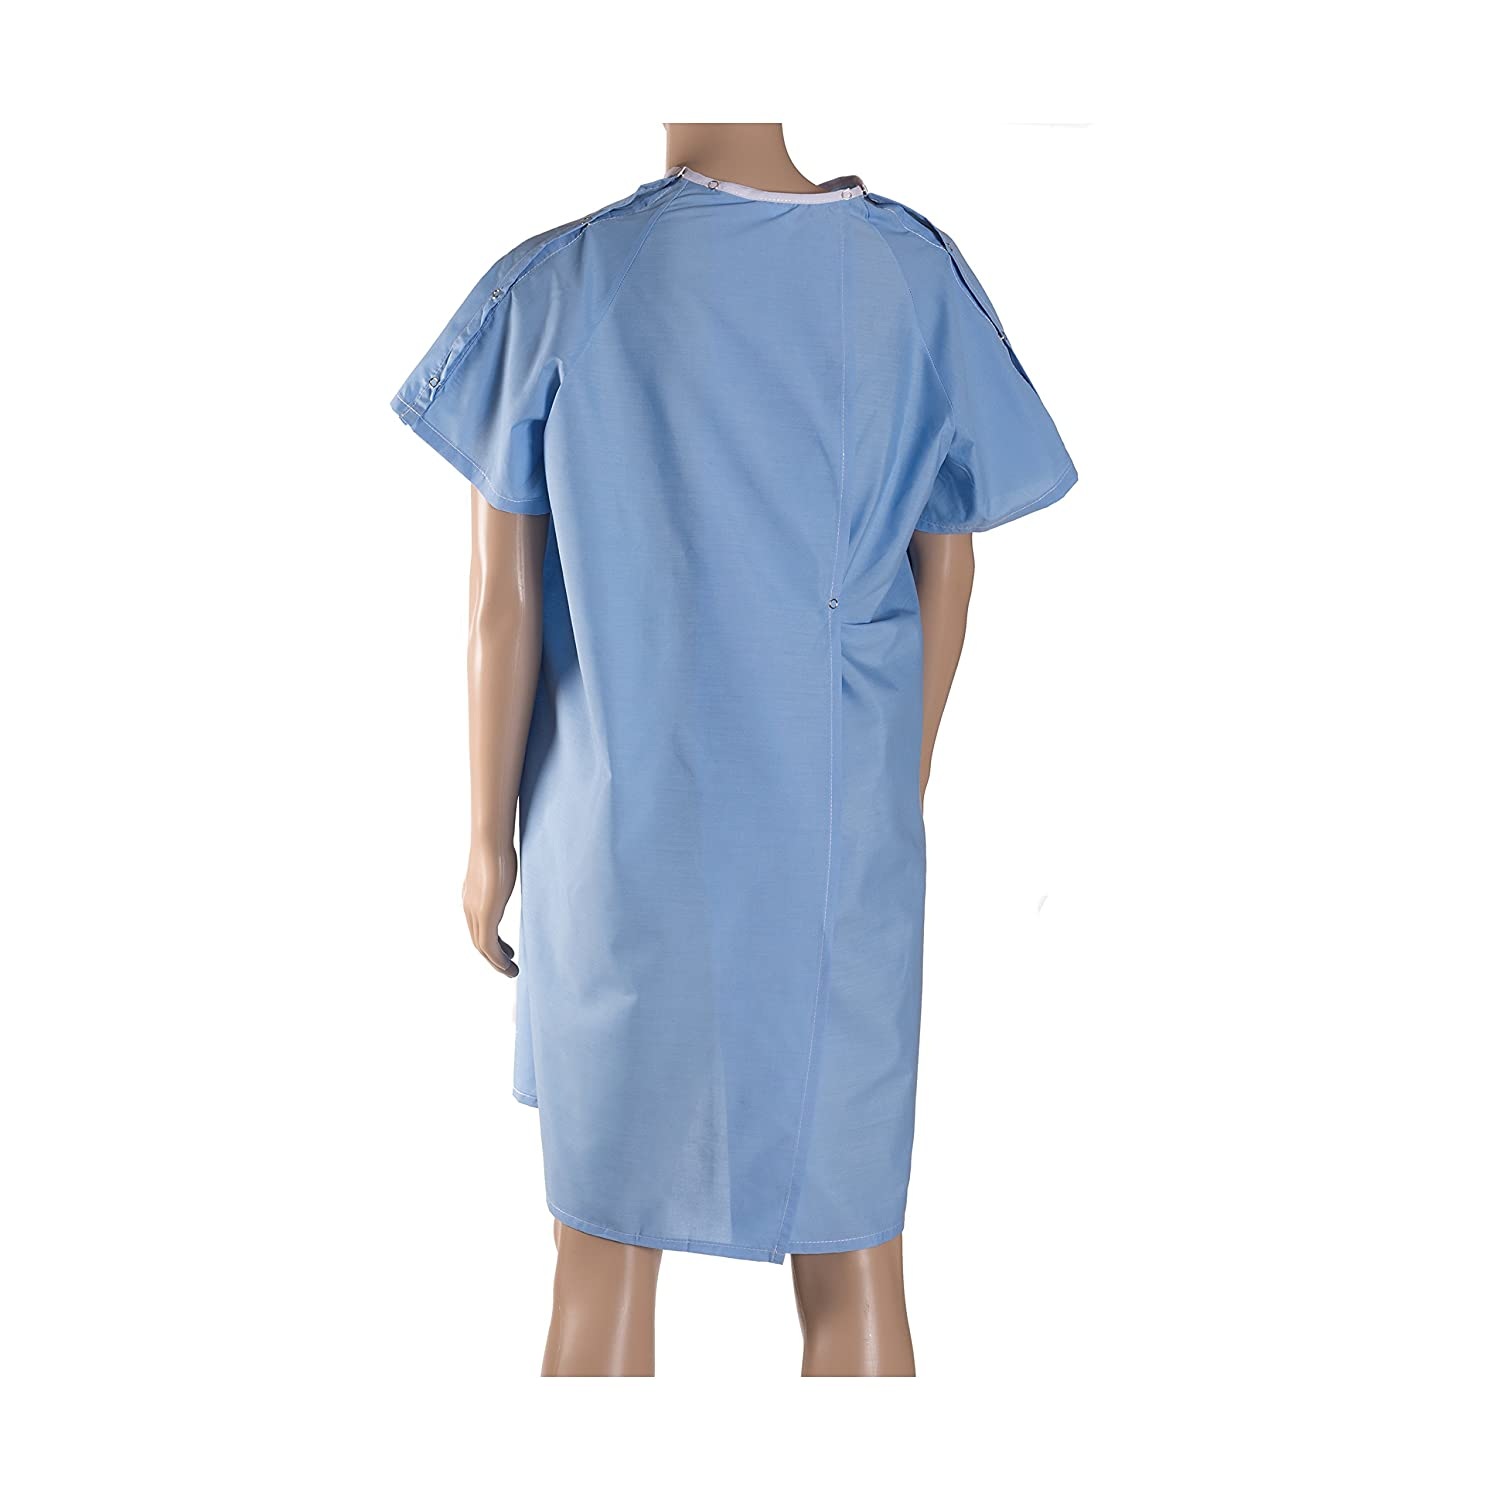 Amazon.com: DMI Hospital Gown, Easy Access Patient Gown, Blue ...